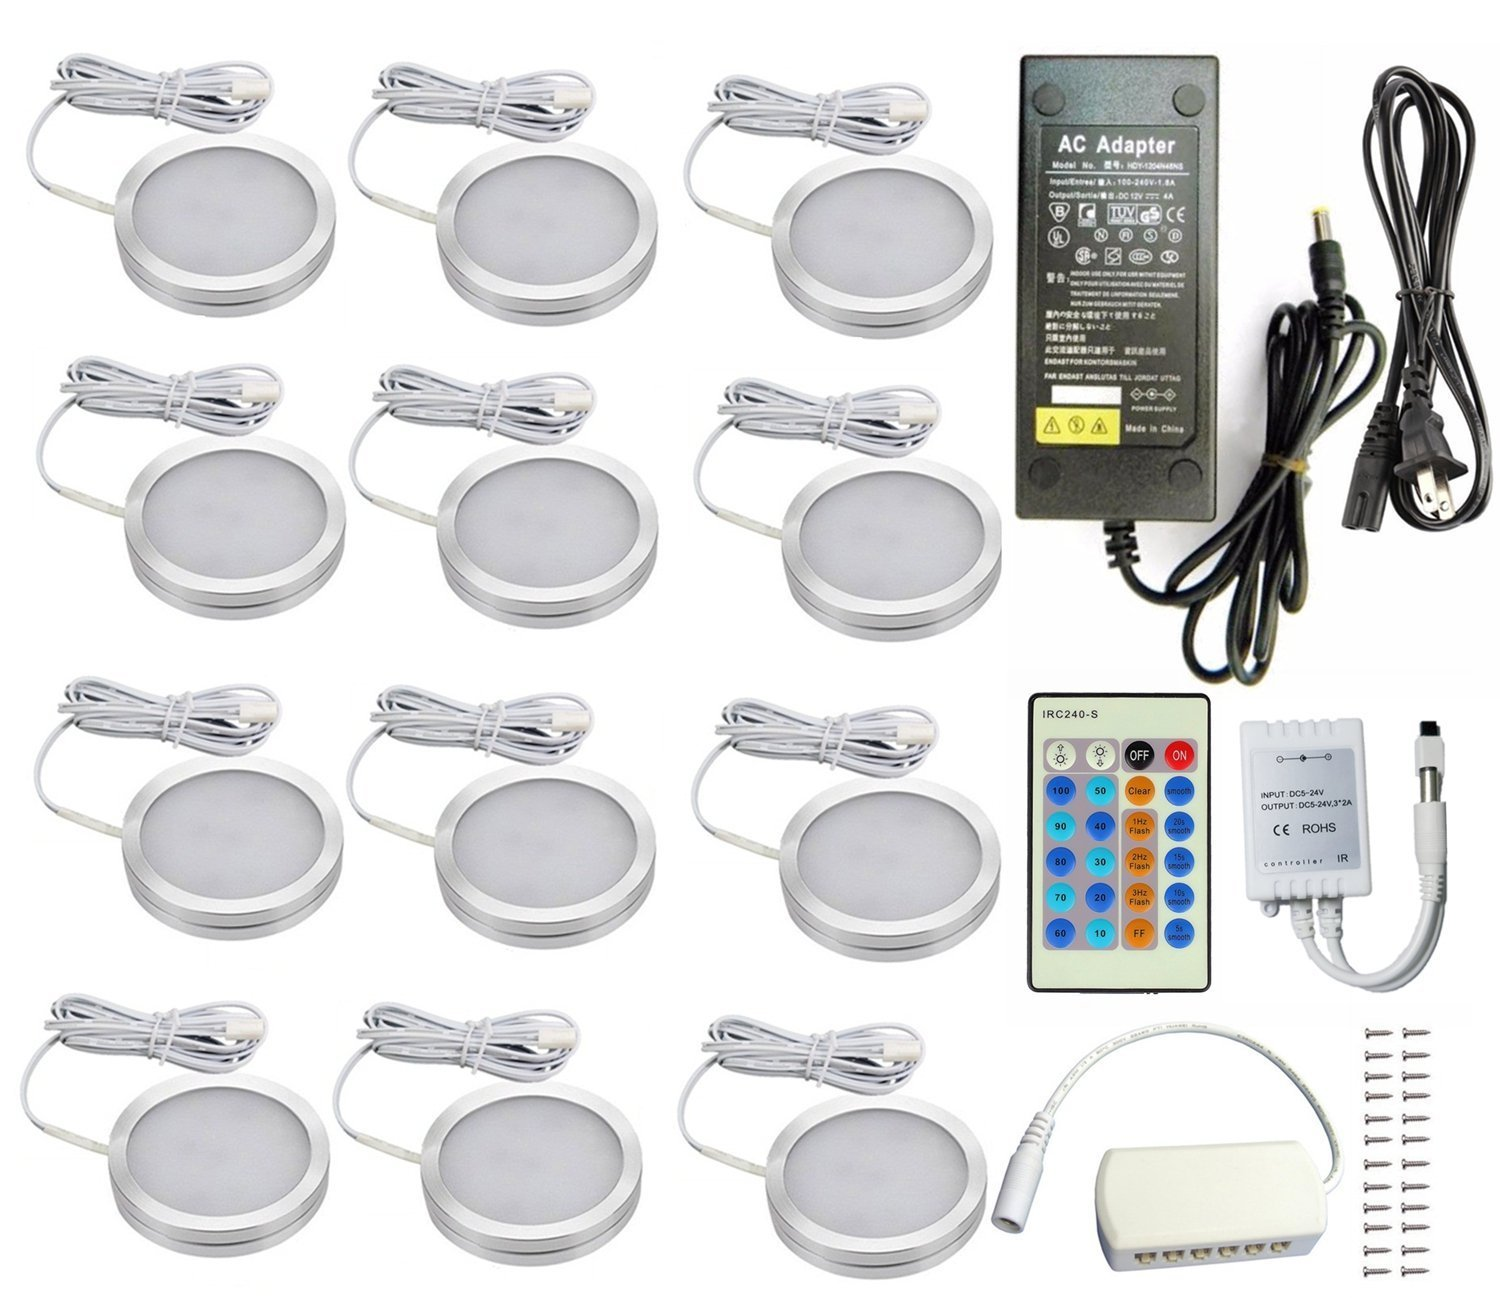 Xking 12 Pcs Dimmable Puck Lights LED Under Cabinet Lighting Kit, DC12V Total 24W - Warm White